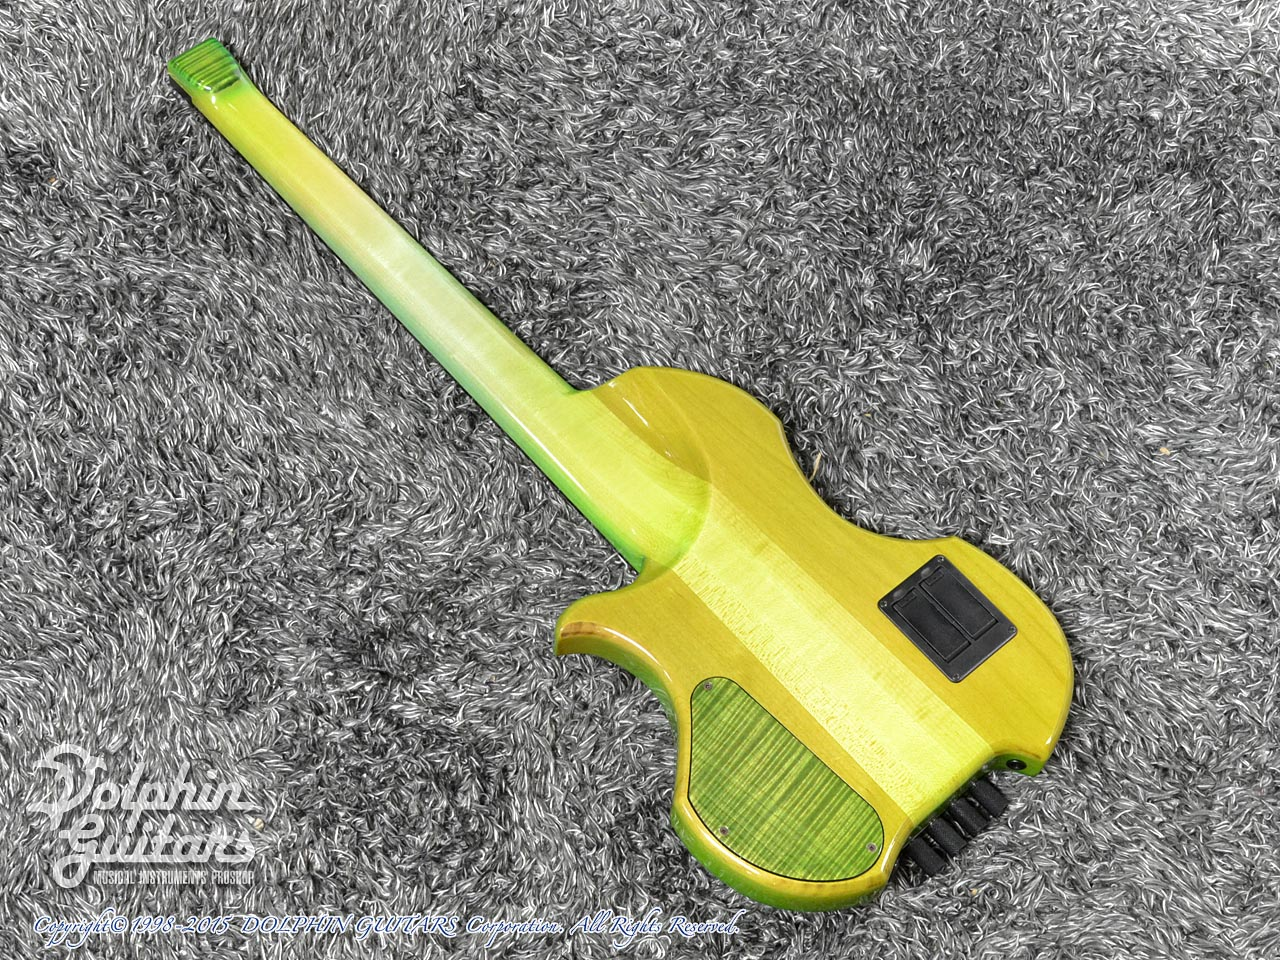 Charo's: CH-B4 Compact Headless Bass (Curly Maple & Alder) (Tropical Forest) (4)